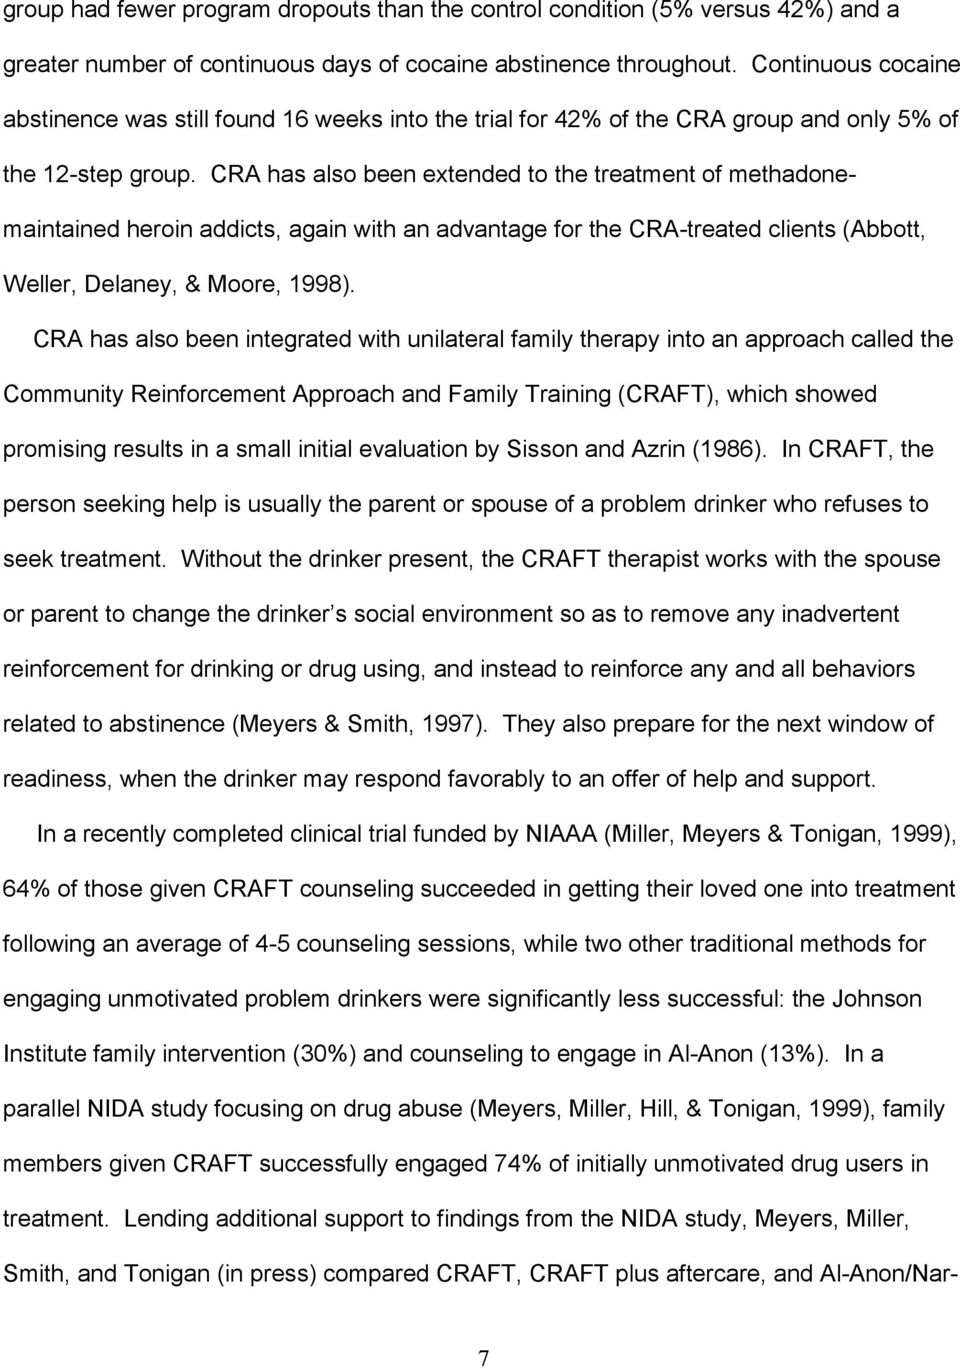 CRA has also been extended to the treatment of methadonemaintained heroin addicts, again with an advantage for the CRA-treated clients (Abbott, Weller, Delaney, & Moore, 1998).